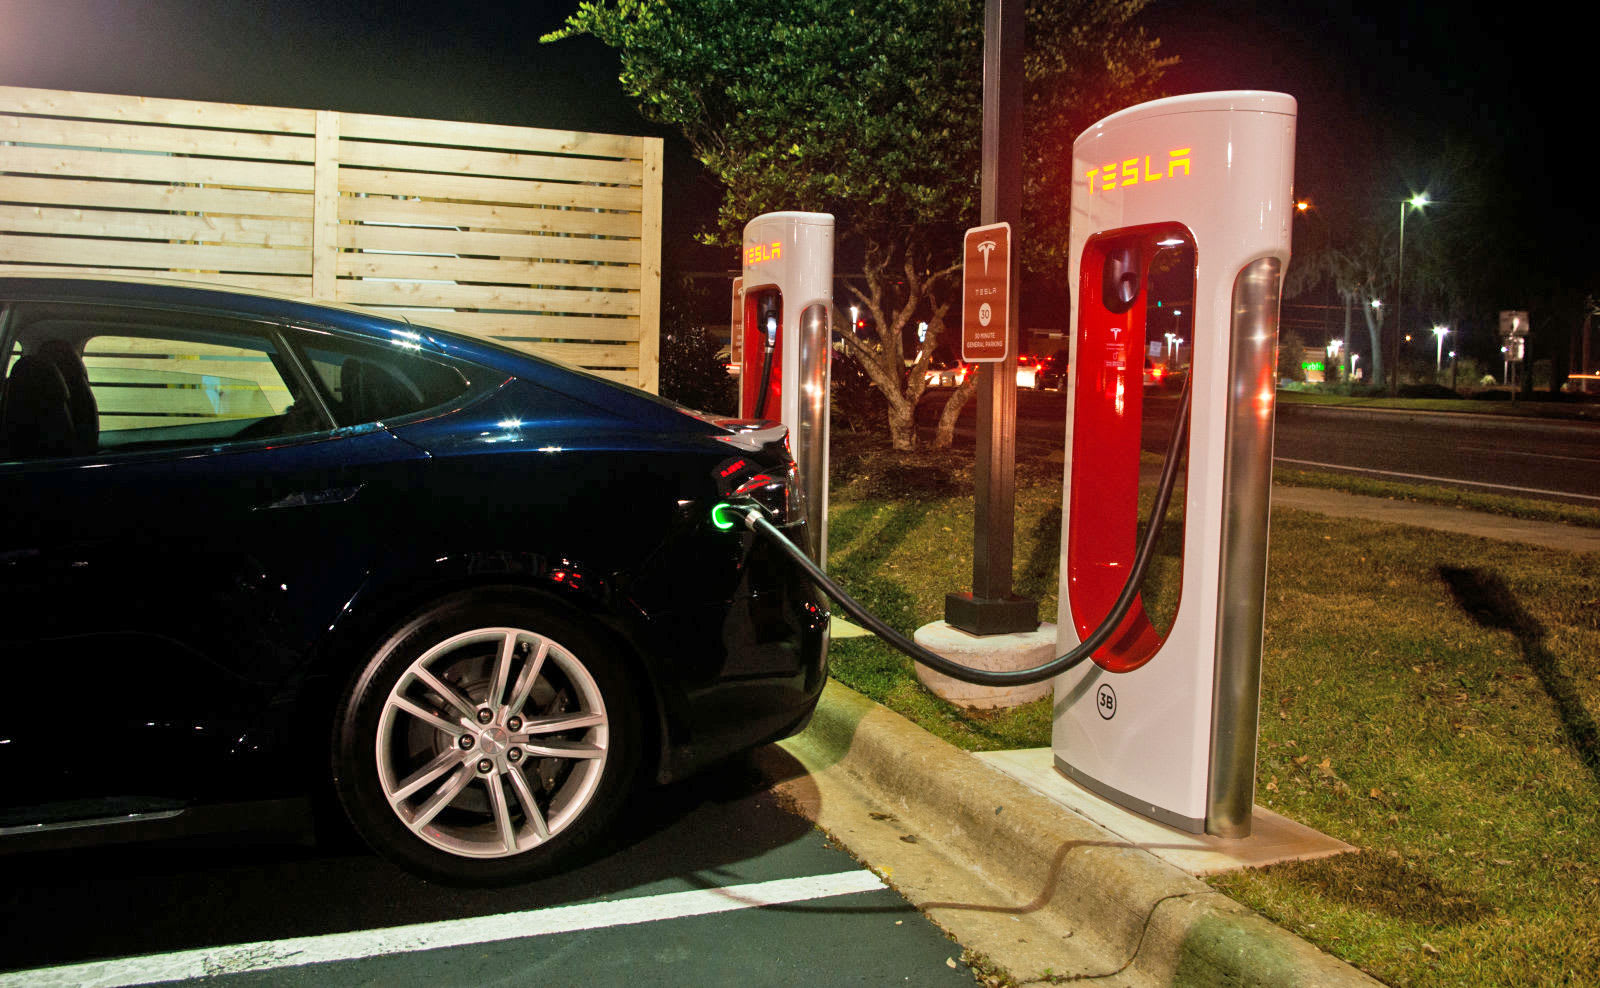 If You Ve Still Yet To Your Dream Model X Or S We Re Afraid Only Have A Of Days Get One With Free Lifetime Access Tesla Supercharger